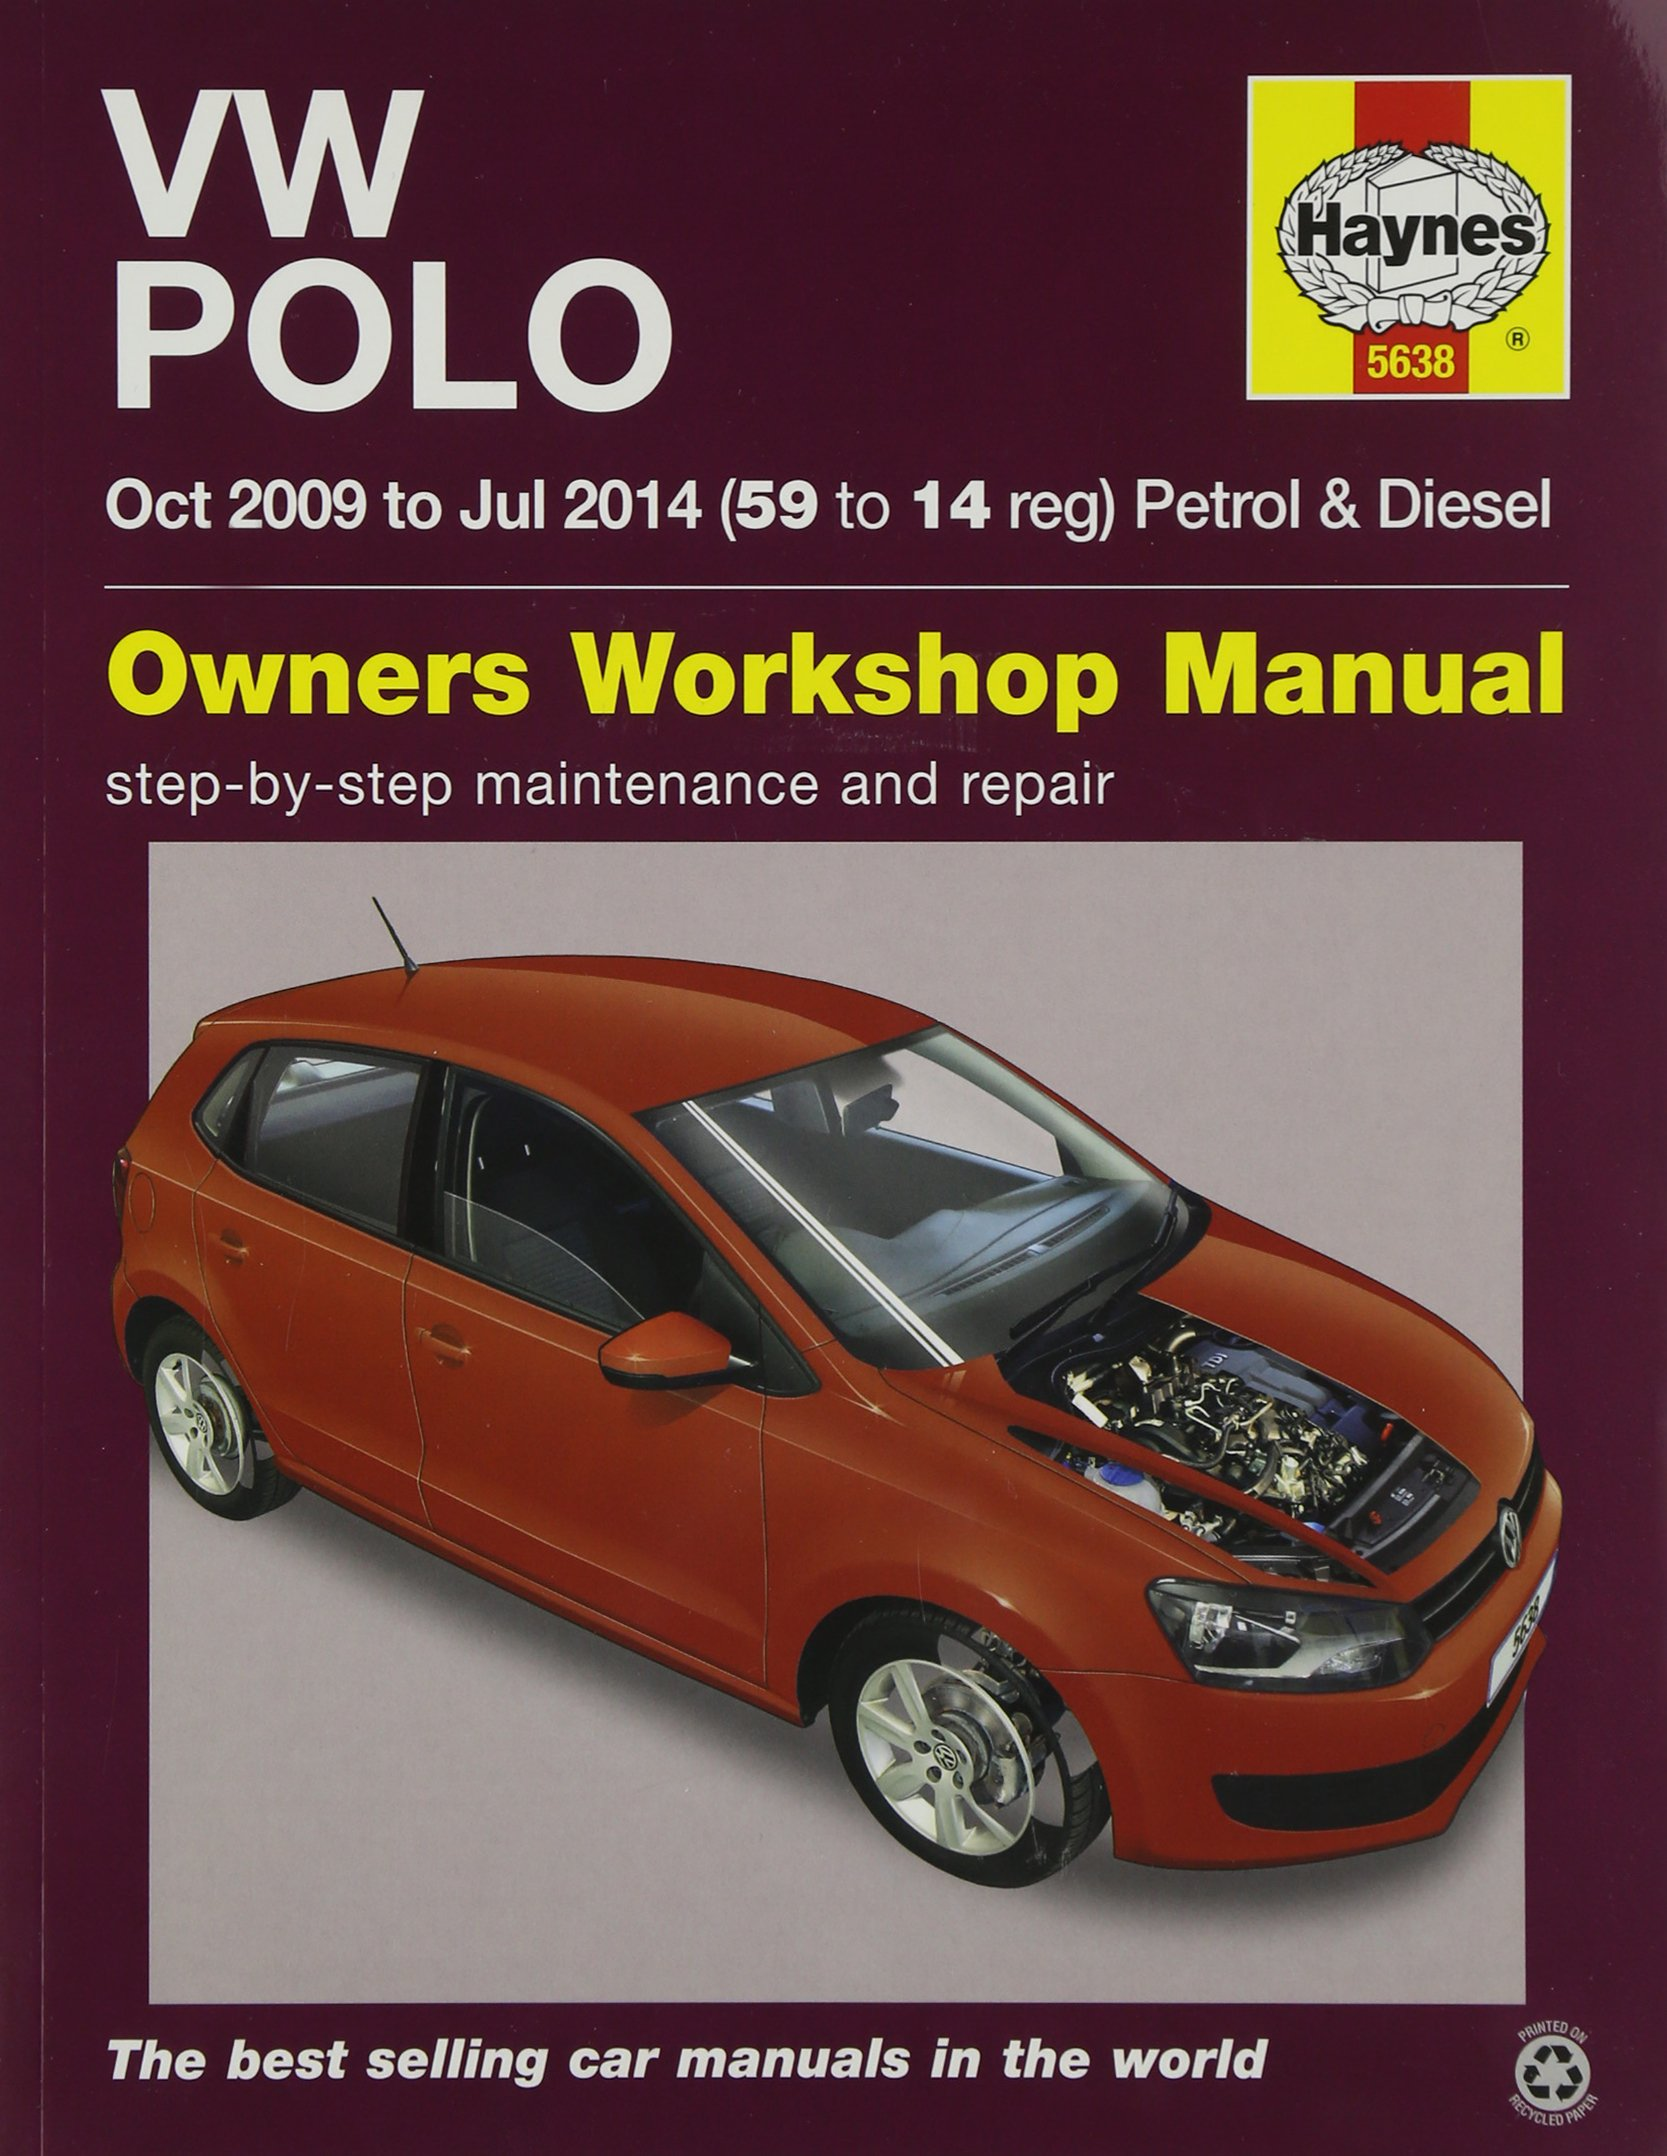 volkswagen polo repair manual haynes manual service manual workshop rh amazon co uk 2003 vw polo owners manual 2003 vw polo owners manual